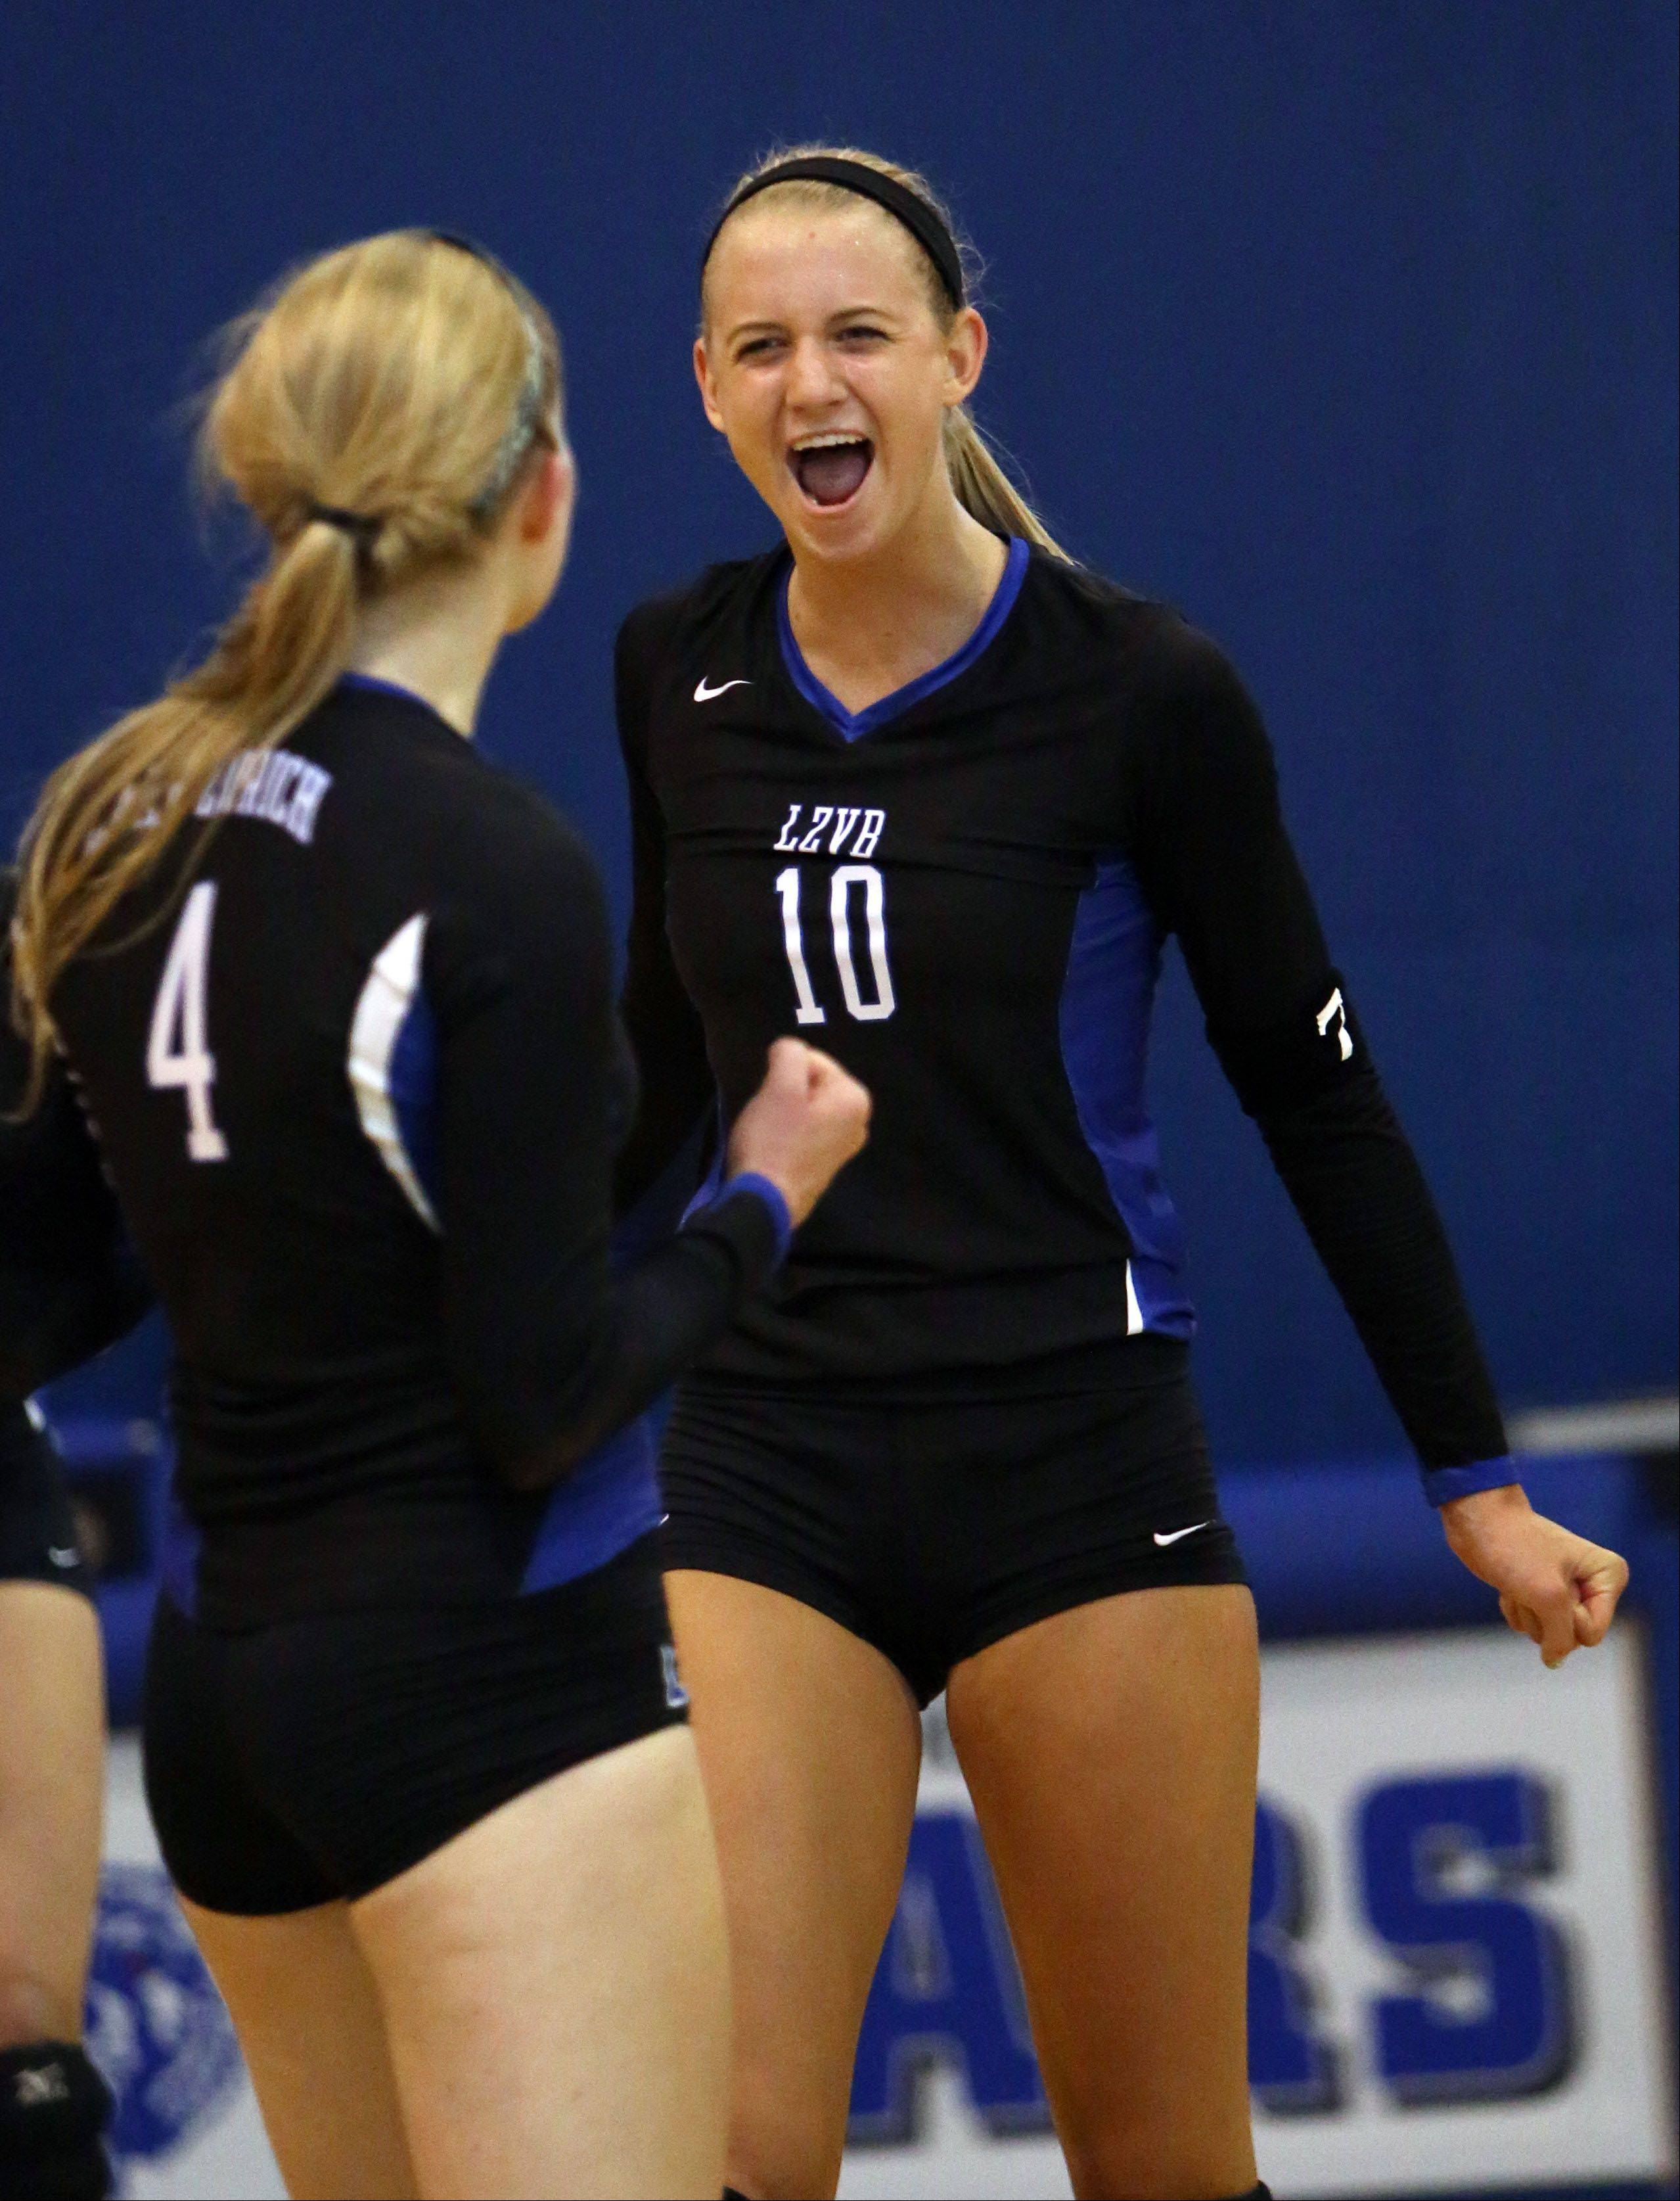 Lake Zurich's Kristen Walding, right, celebrates with teammate Kiley McPeek after winning a point against Carmel Tuesday in Lake Zurich.